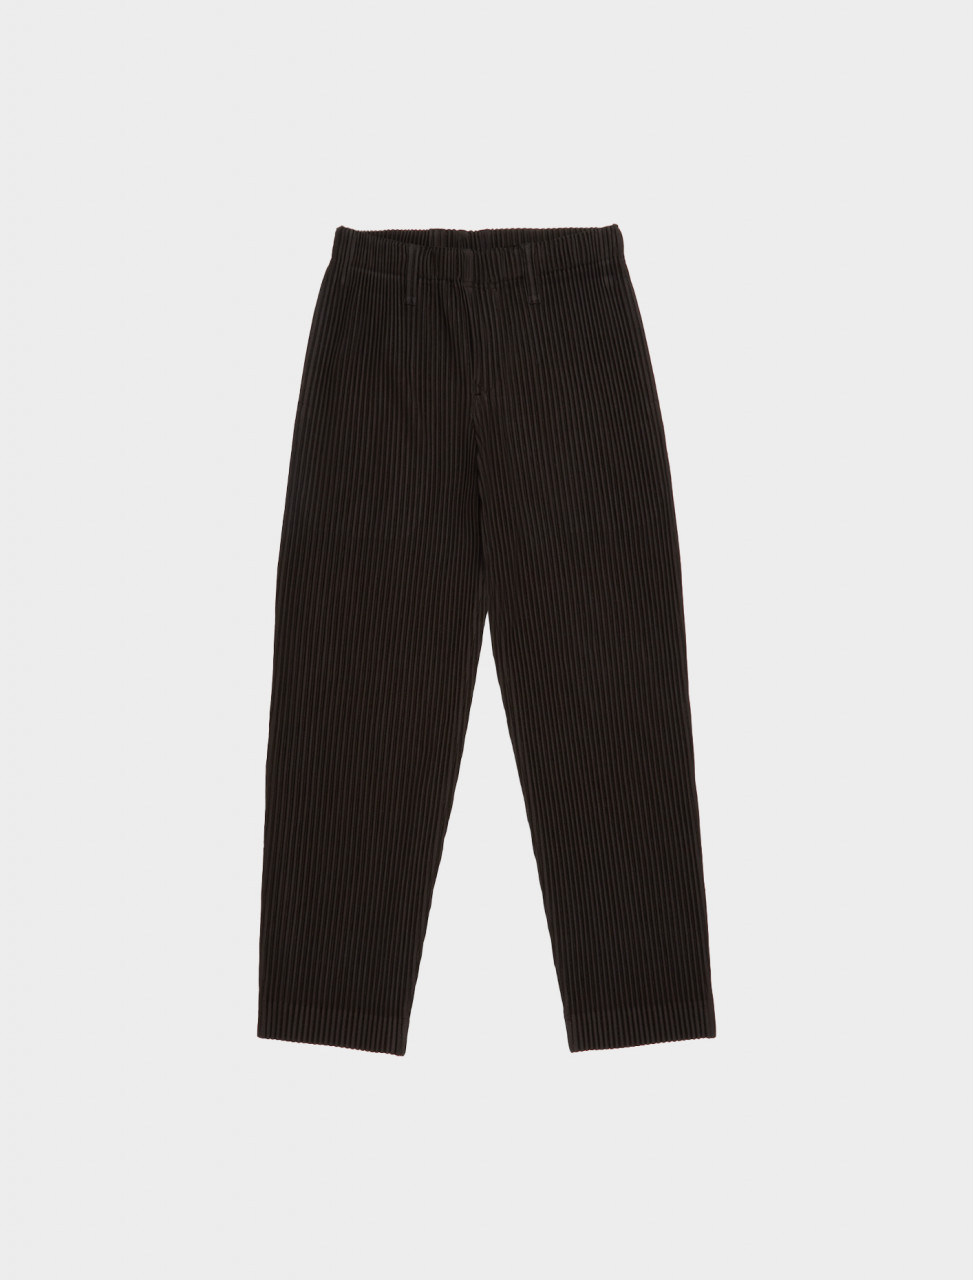 HP08JF211-45 HOMME PLISSE ISSEY MIYAKE PLEATED TROUSER CHARCOAL BROWN